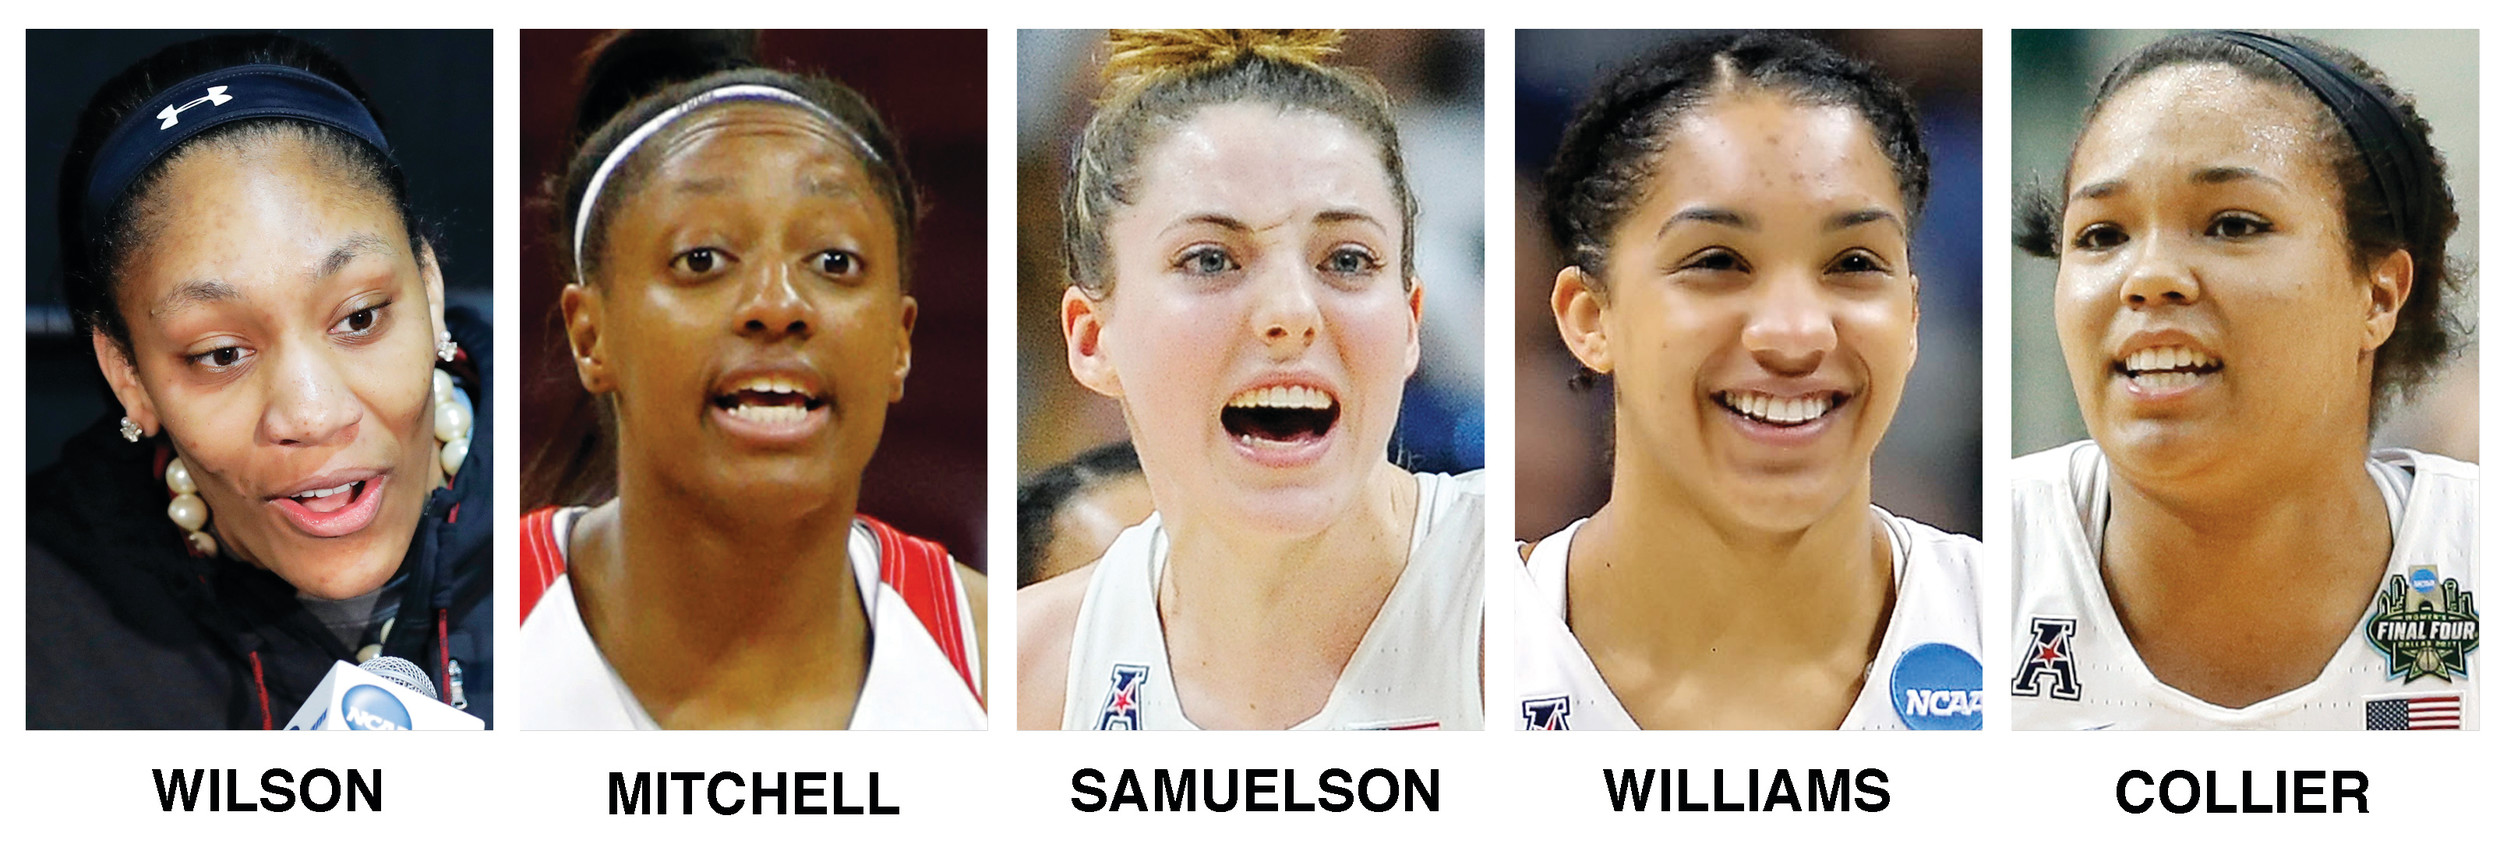 These undated file photos show The Associated Press preseason All-America women's NCAA college basketball team. They are, from left, A'ja Wilson, from South Carolina; Kelsey Mitchell, from Ohio State; Katie Lou Samuelson, of UConn; Gabby Williams, of UConn and Napheesa Collier, UConn.